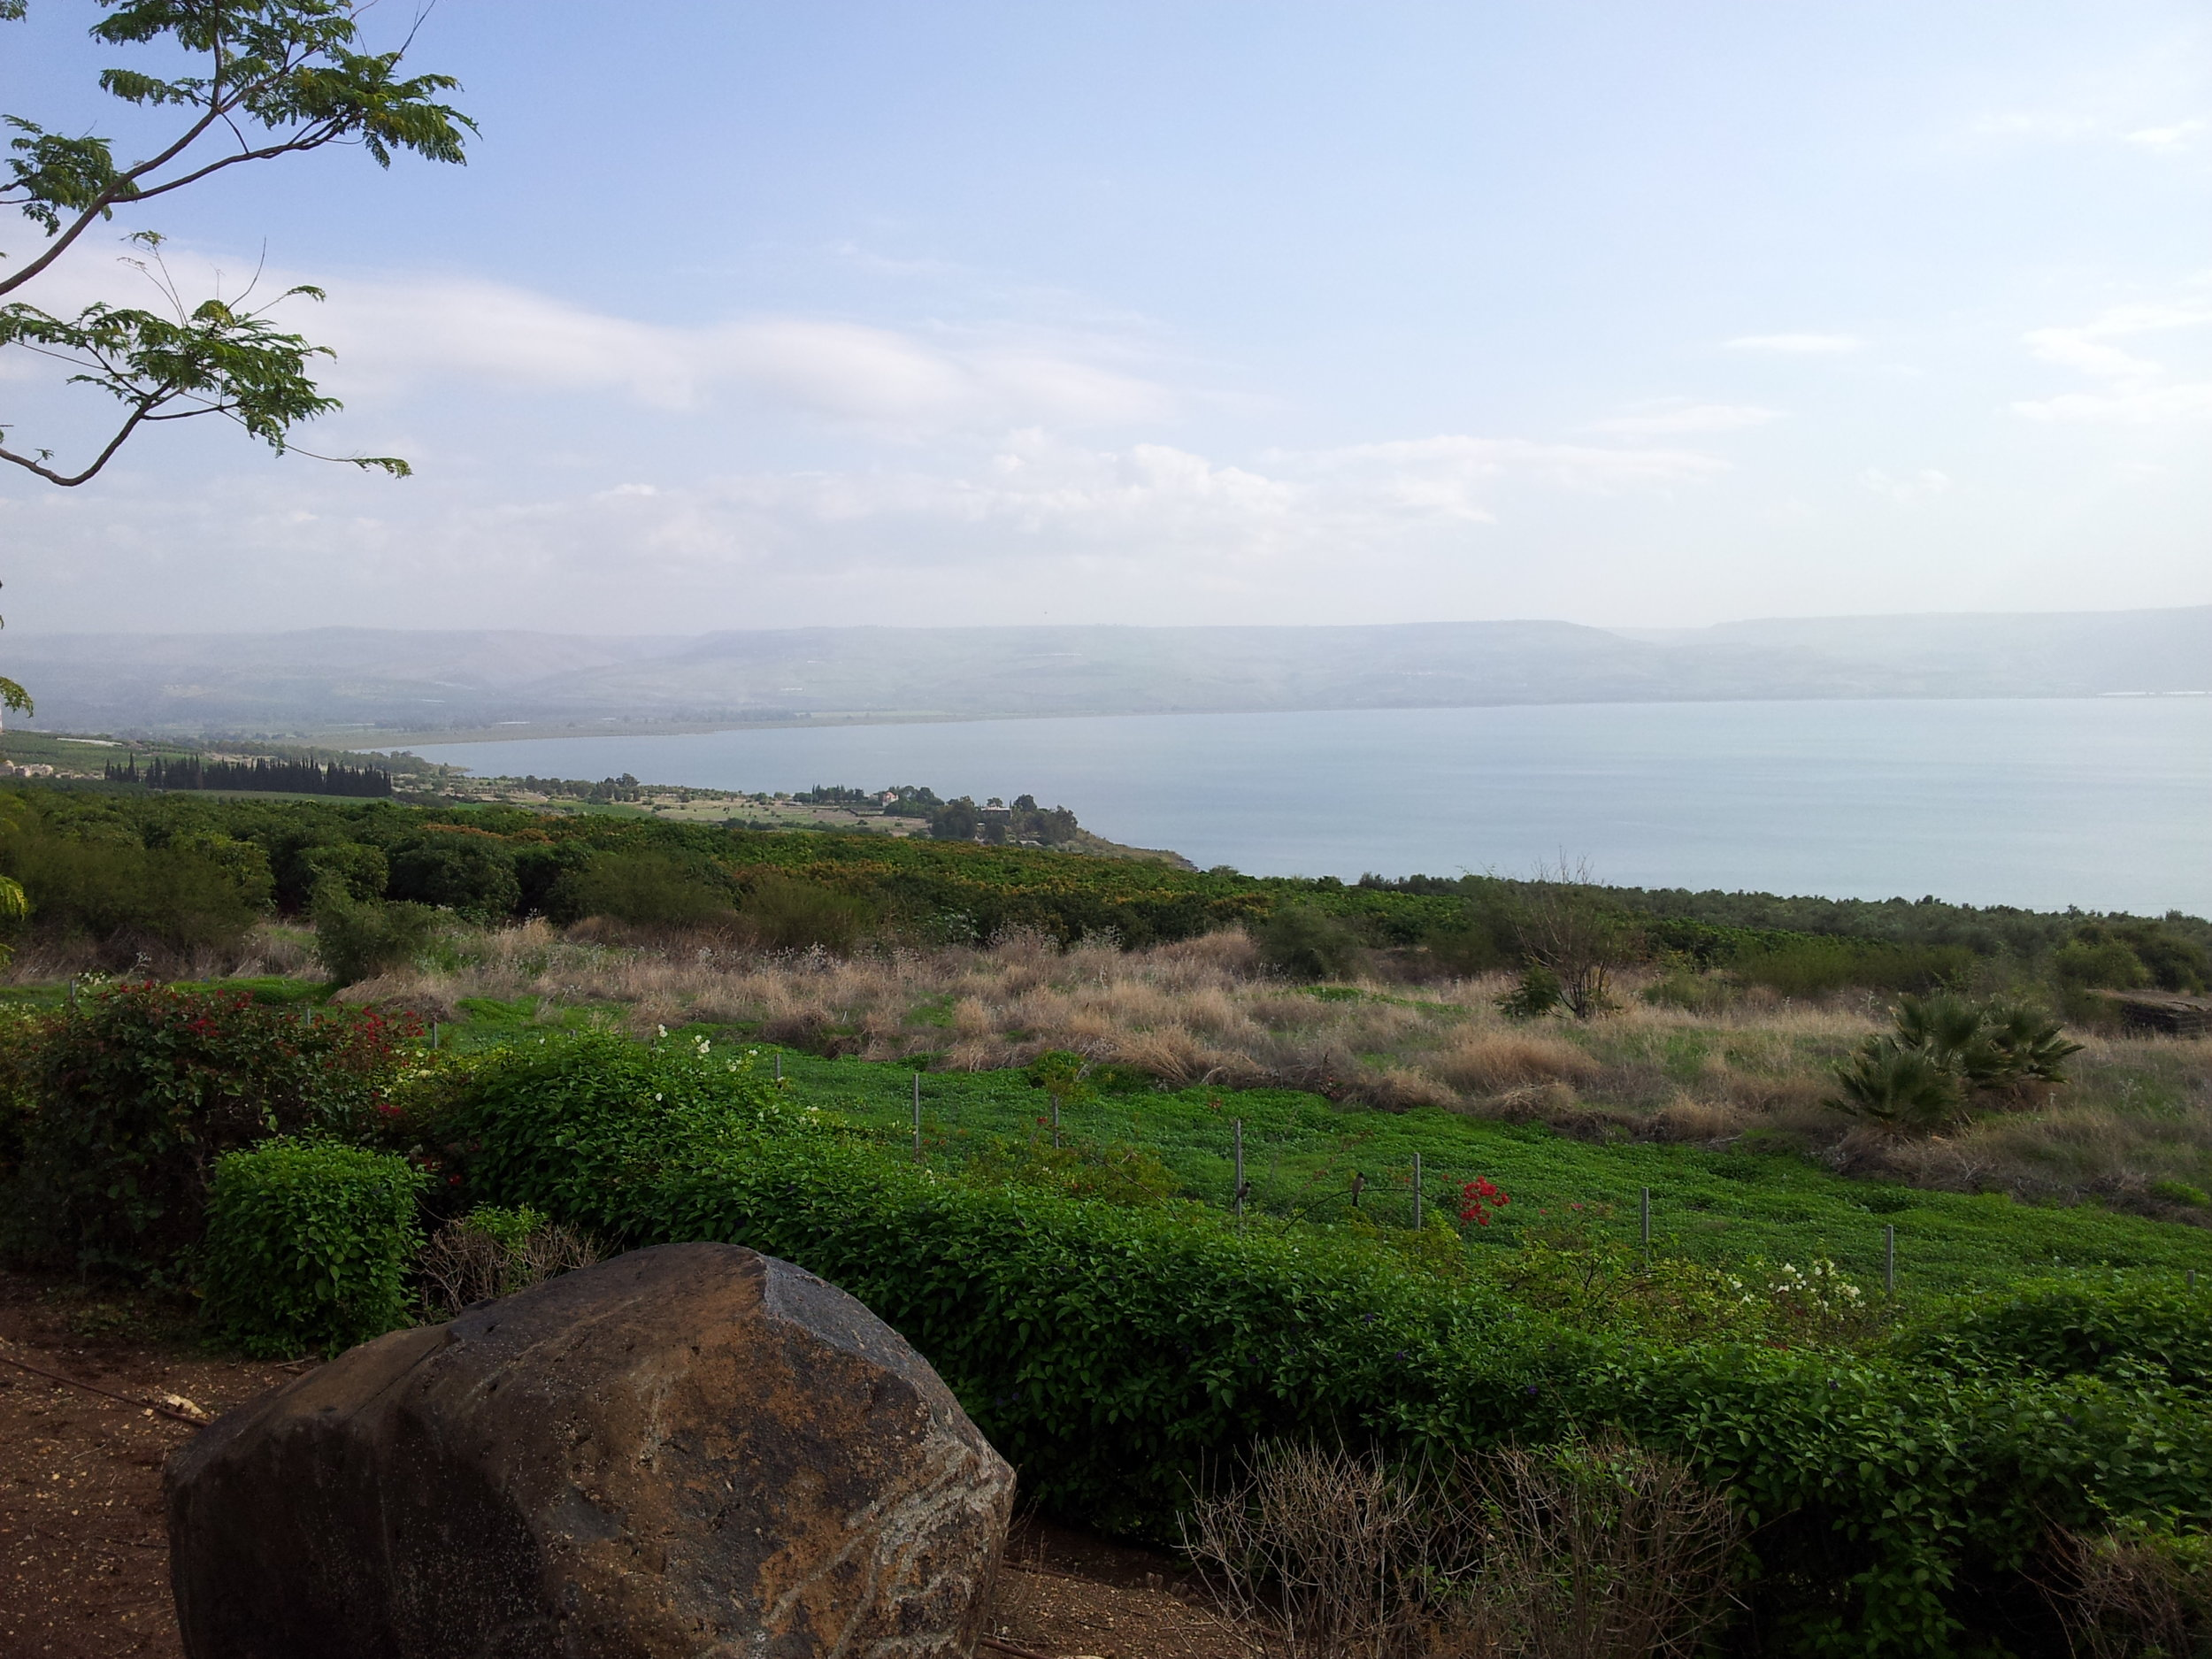 The Mount of the Beatitudes